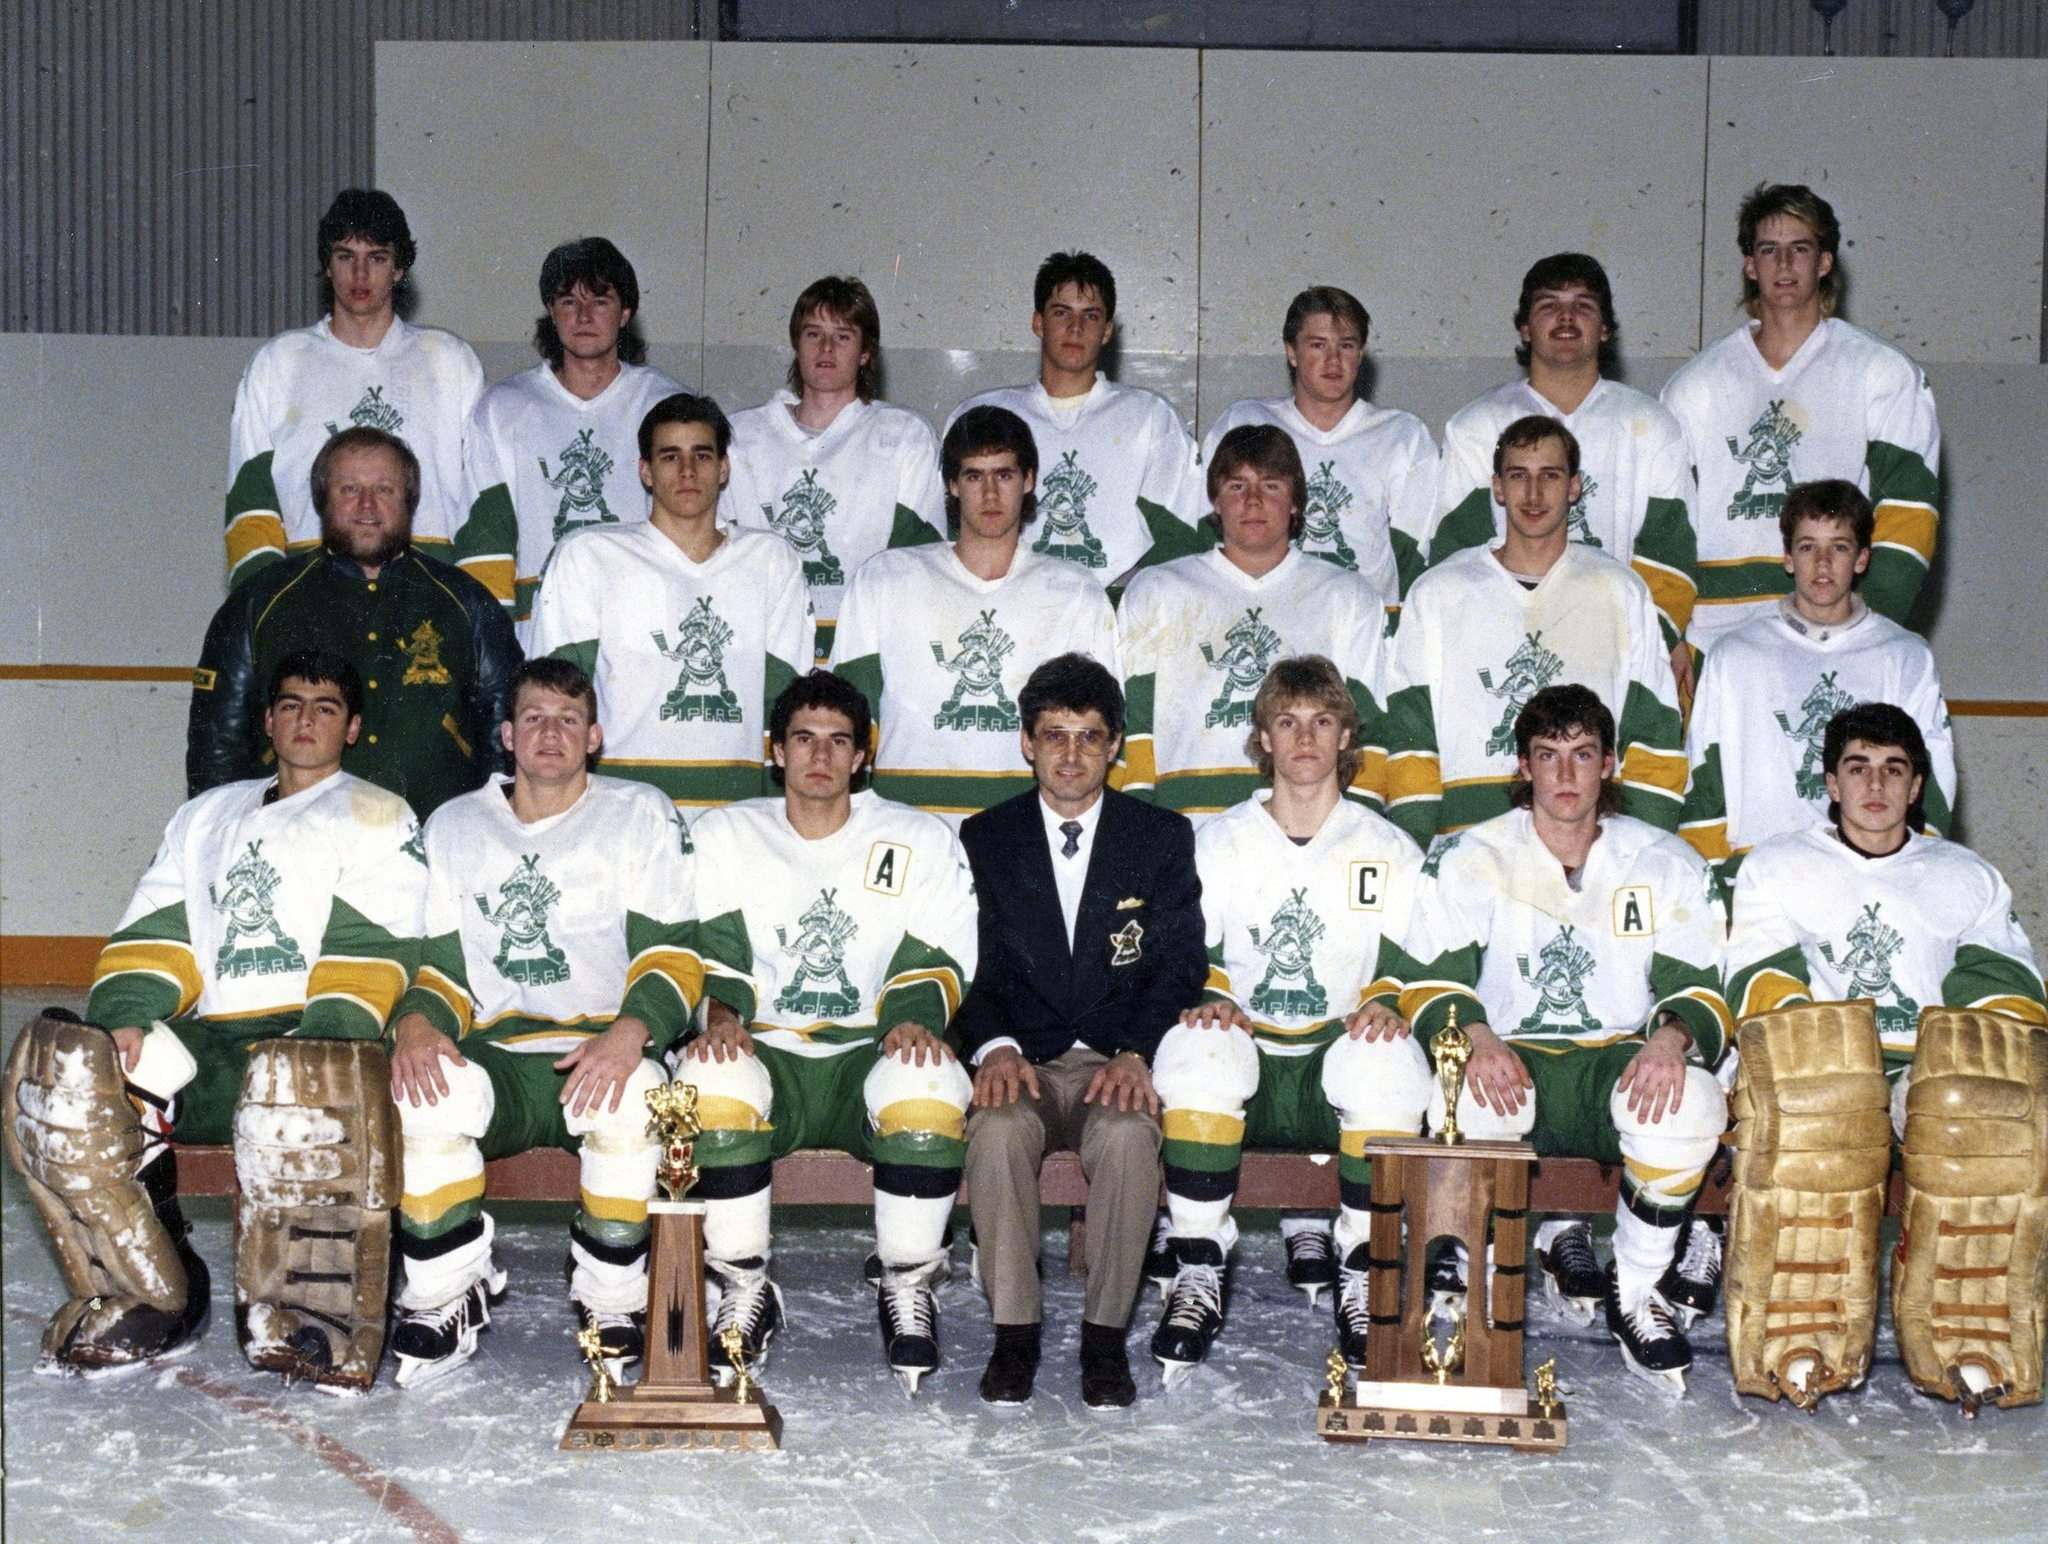 SUPPLIED</p><p>One of Jay Macaulay's happiest hockey moments occurred when the John Taylor Pipers won the high school championship in 1988. Right of Tom Trosky (centre) is Macaulay, the team's captain.</p>